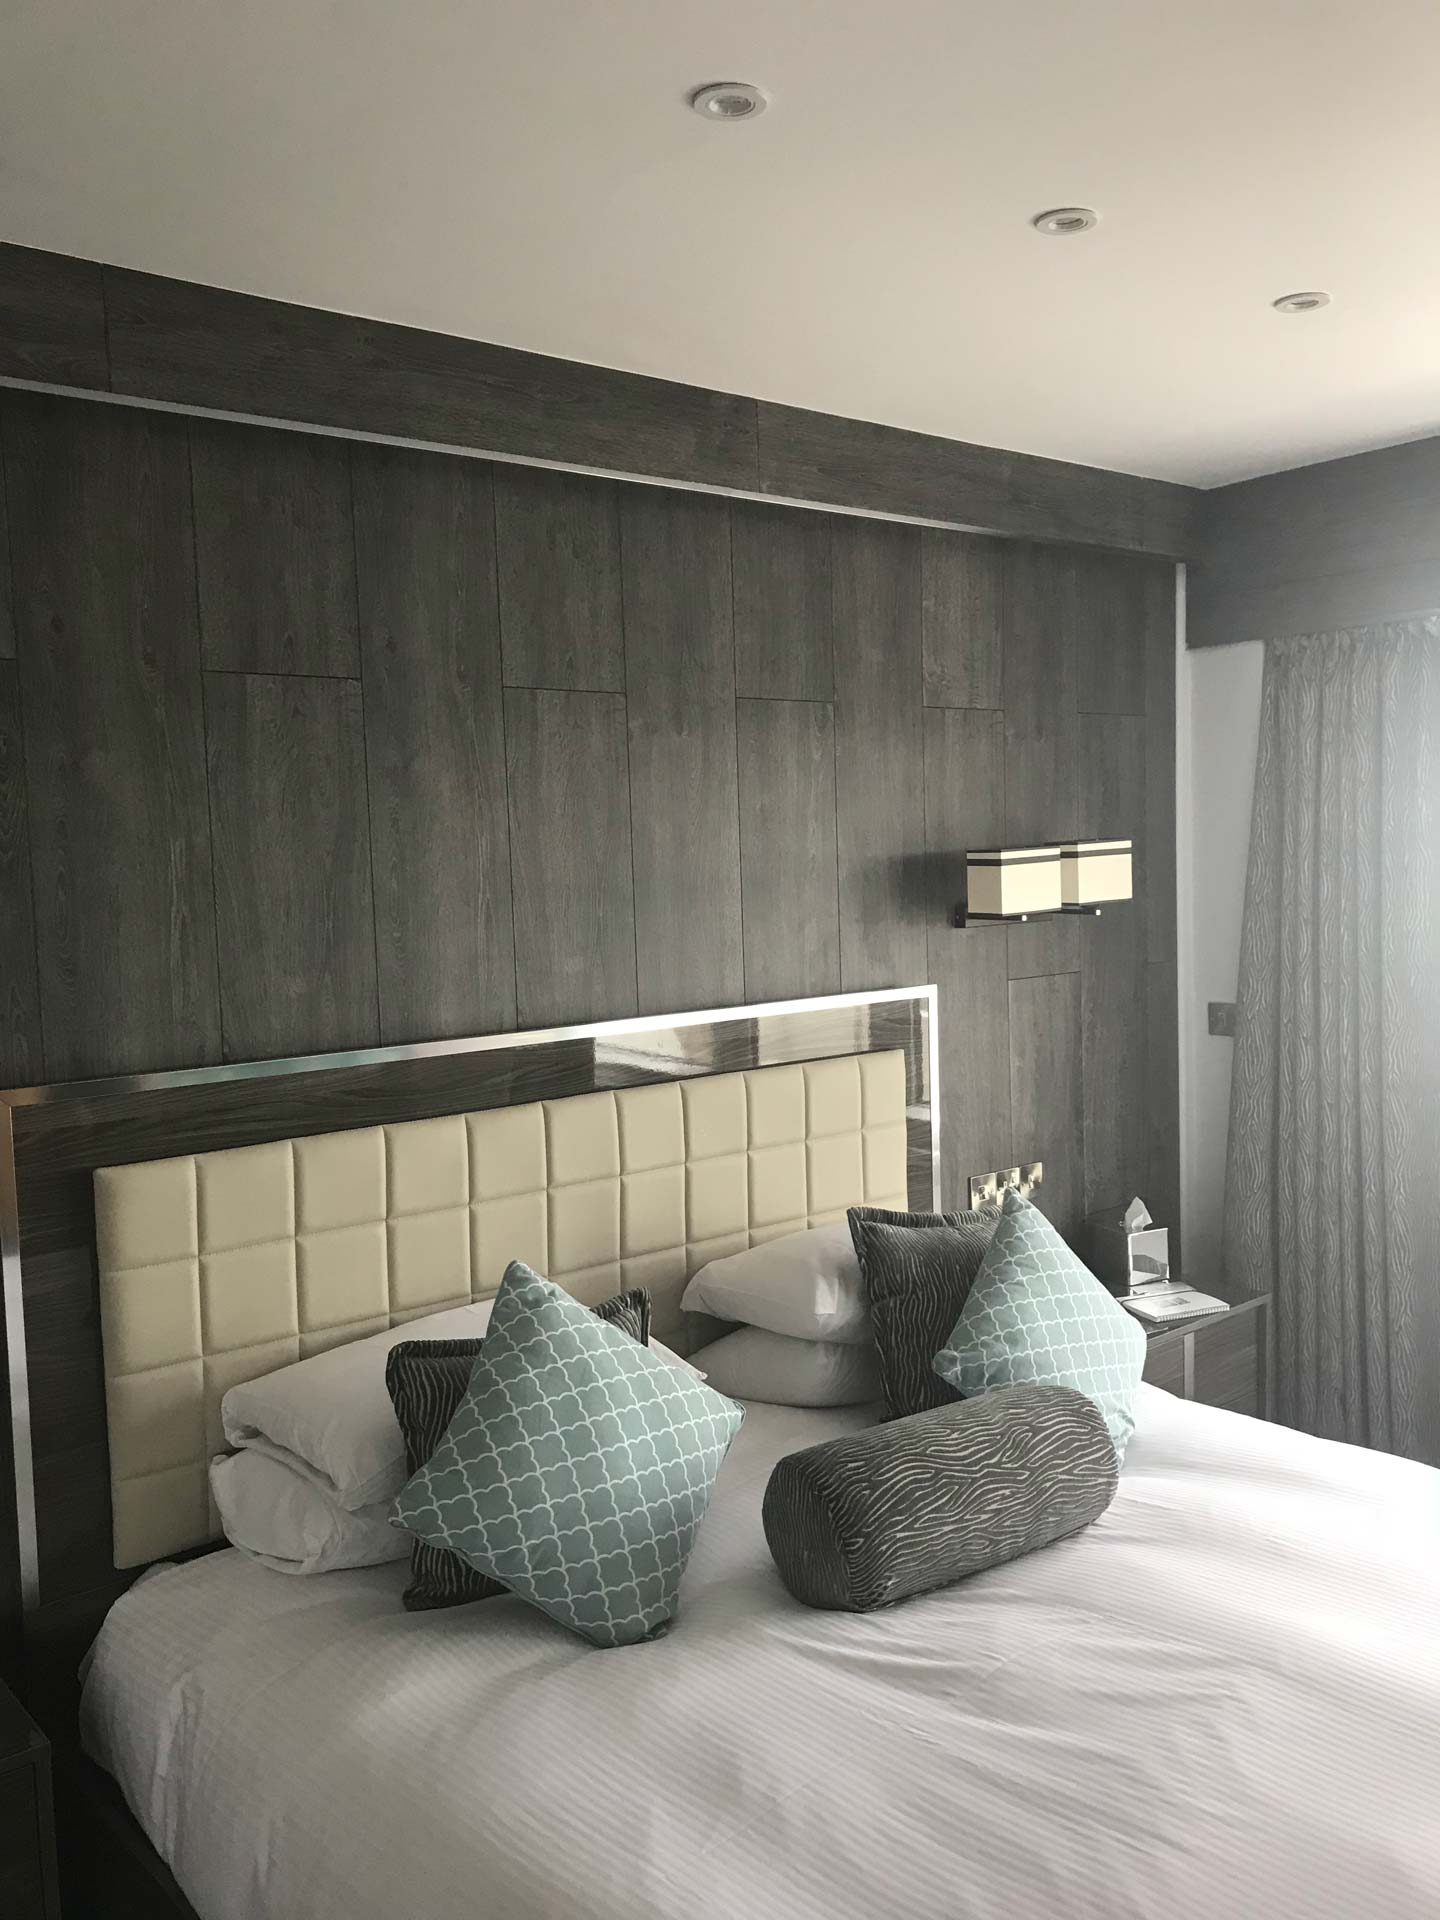 Hotel Bedroom Refurbishment by Emerald Builders Ltd Bournemouth Poole Christchurch Dorset